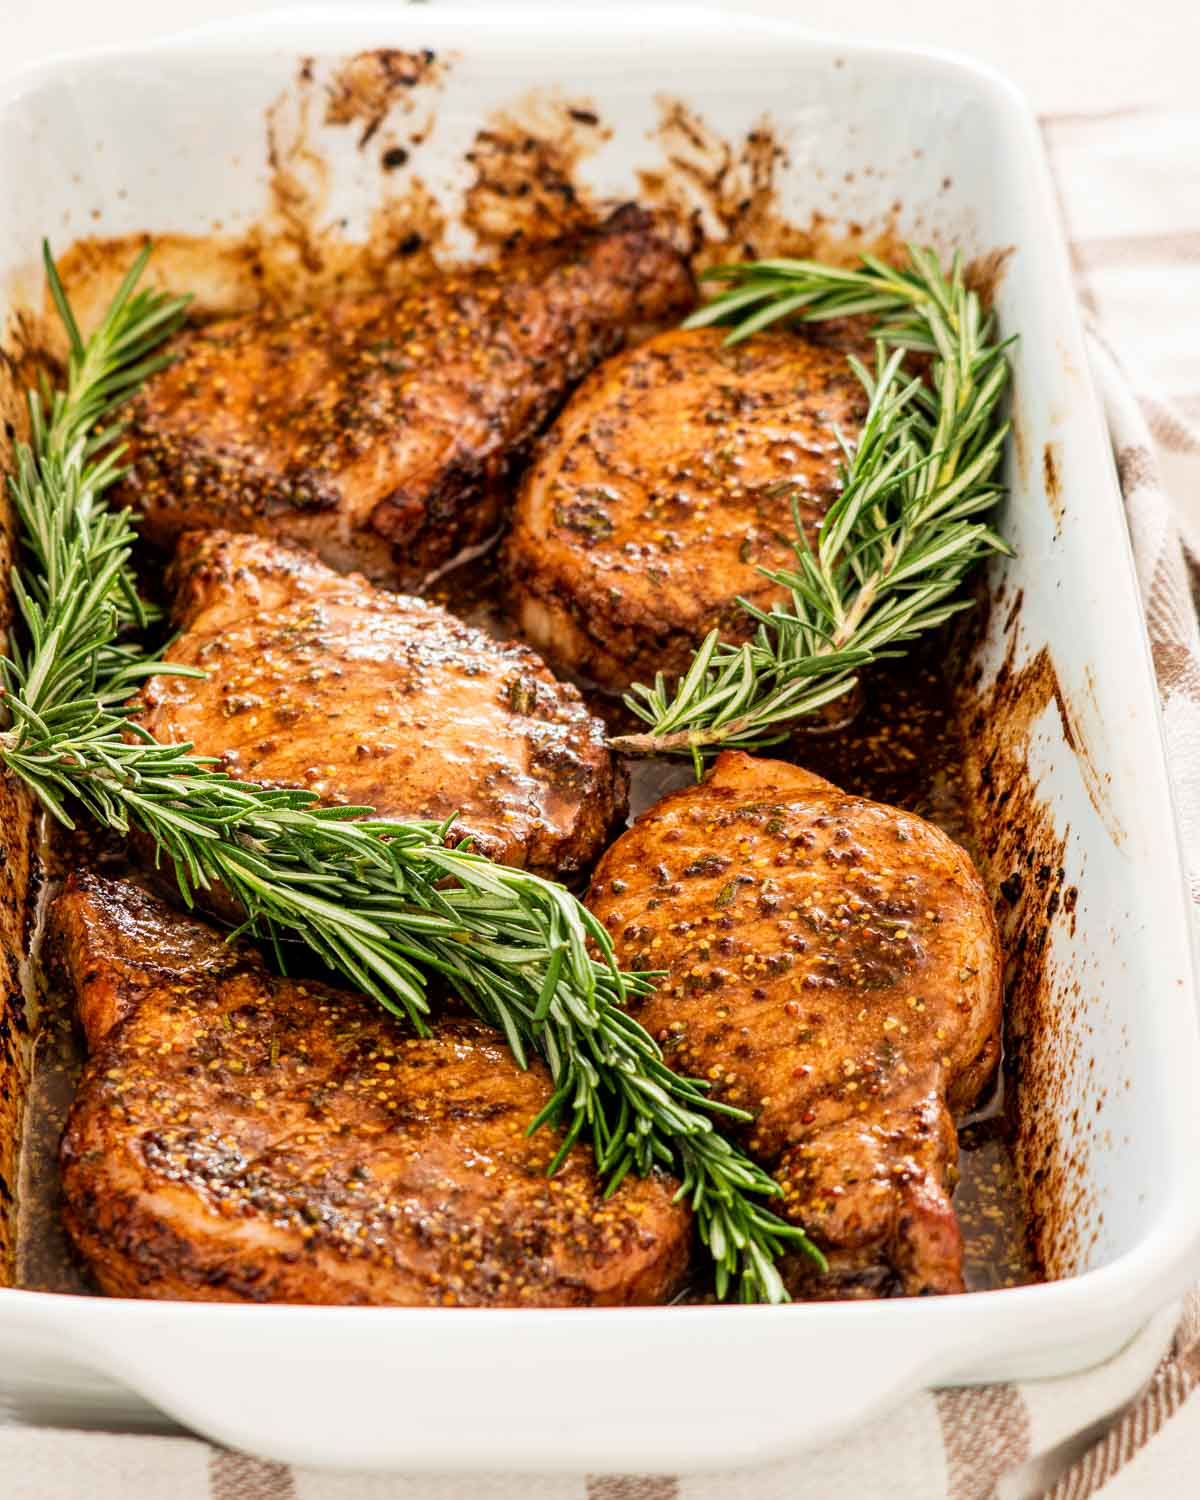 mustard balsamic pork chops in a white casserole dish garnished with rosemary.